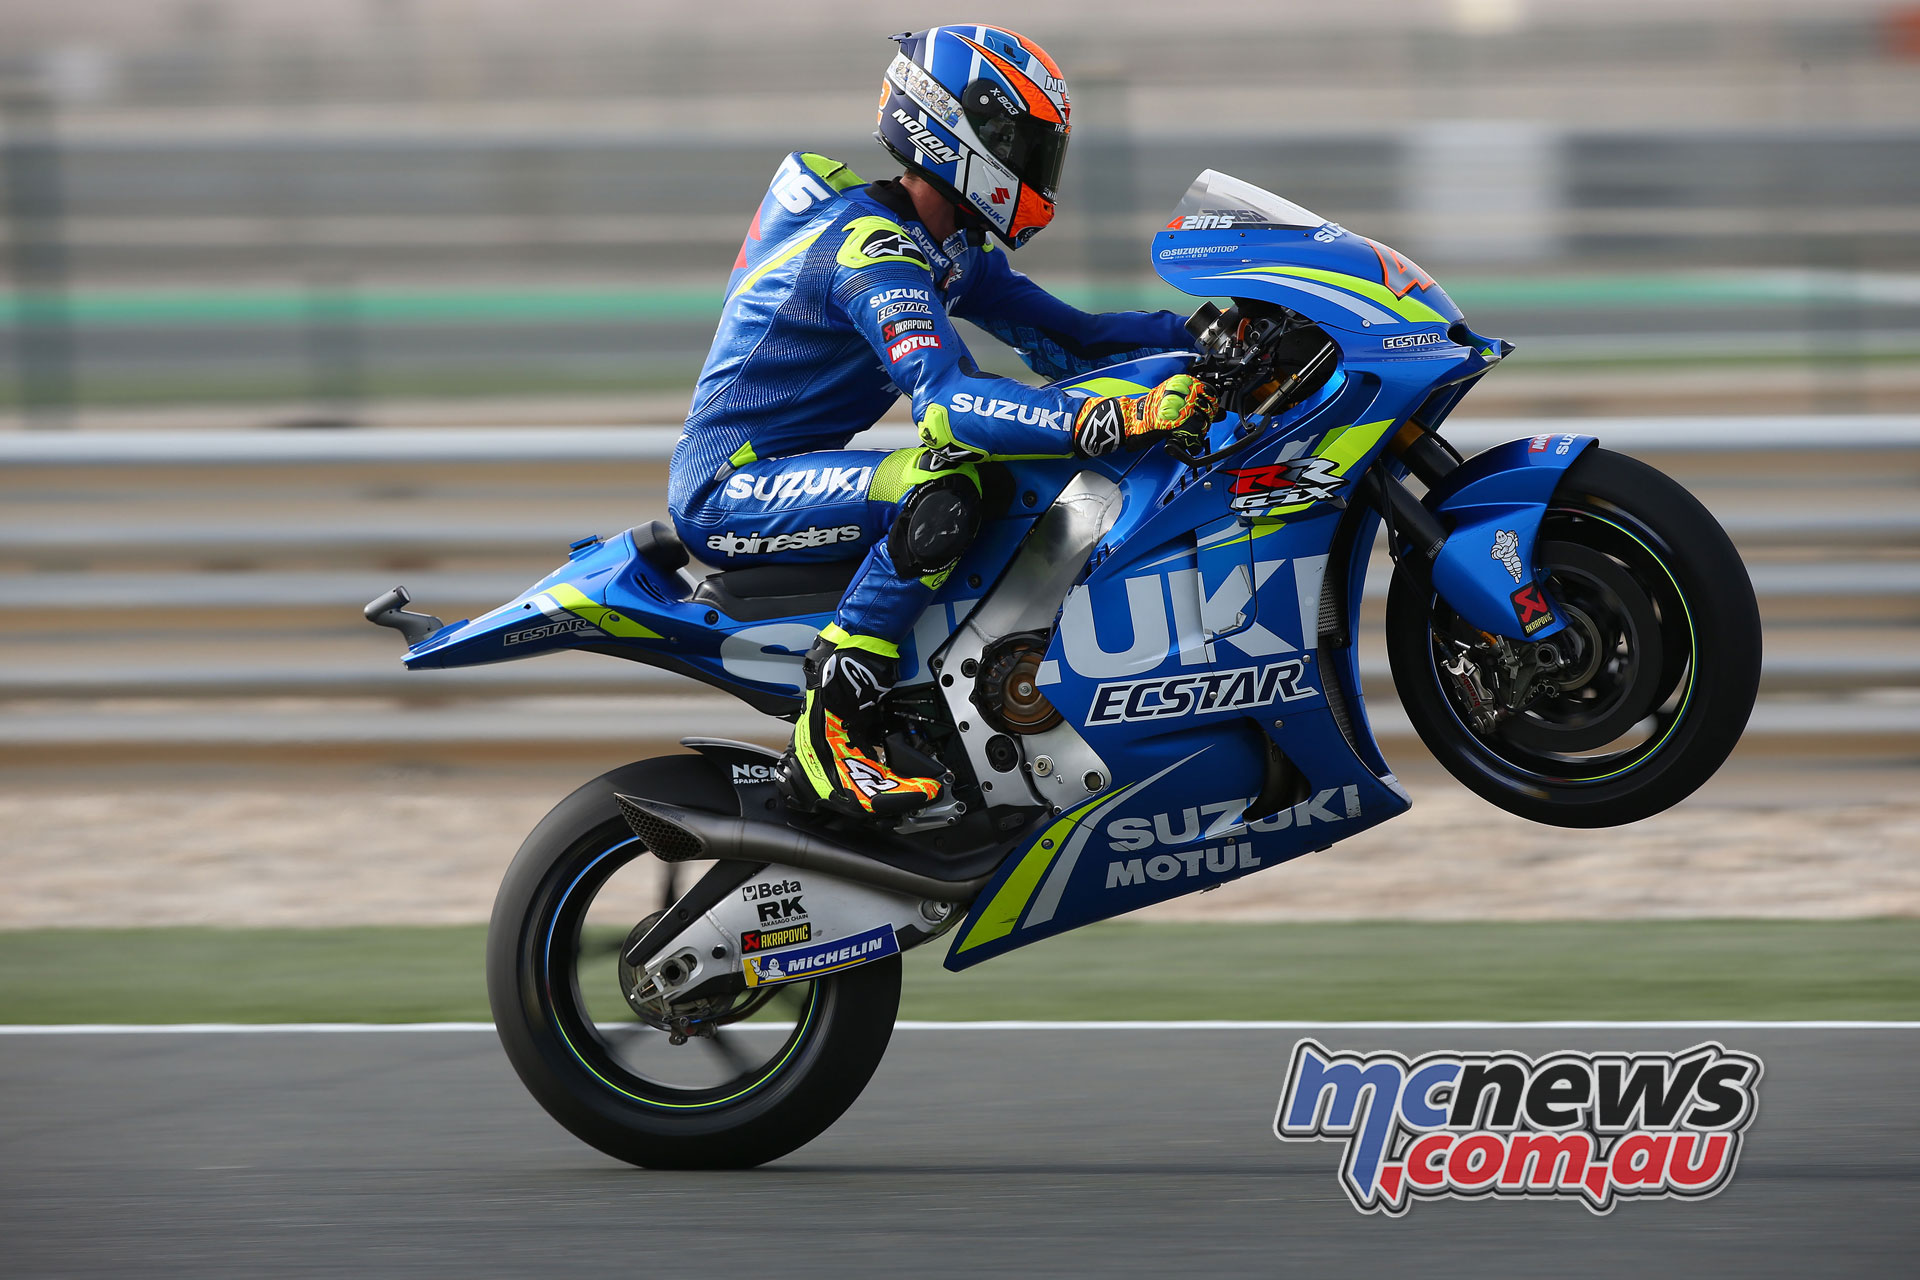 Alex Rins At Ecstar Suzuki Motogp For Two More Years